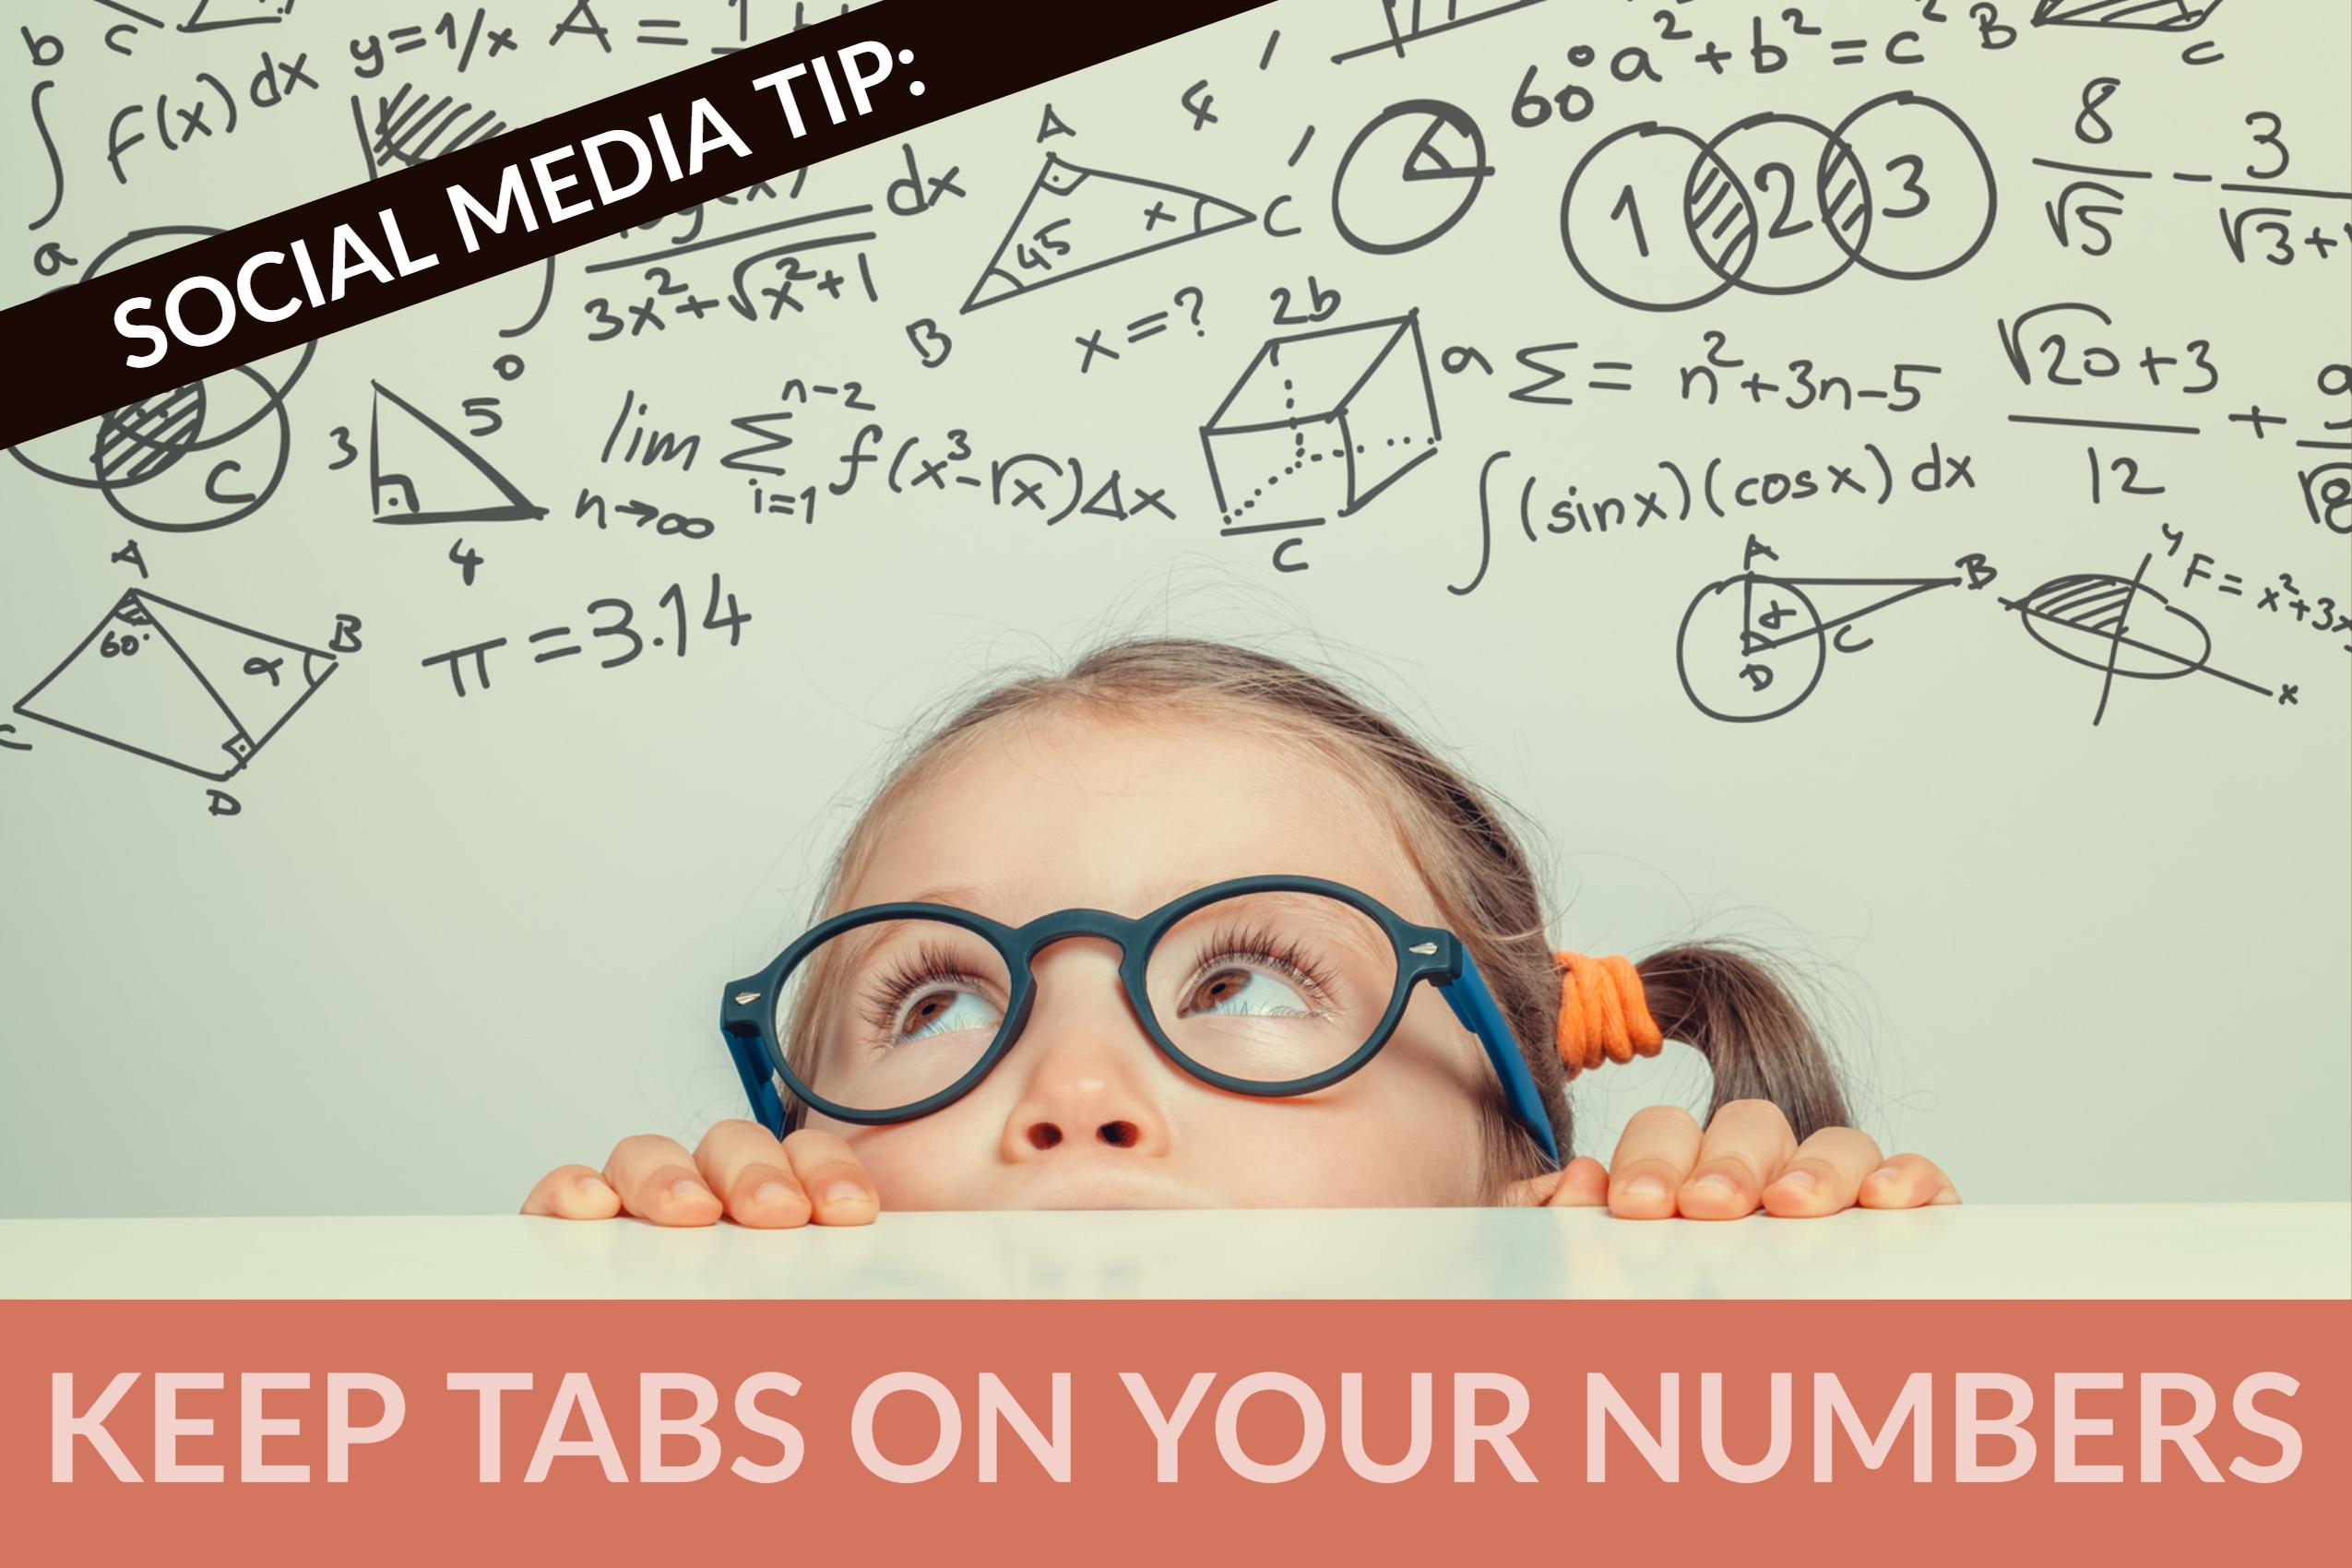 Social Media Tip_ Keep Tabs On Your Numbers